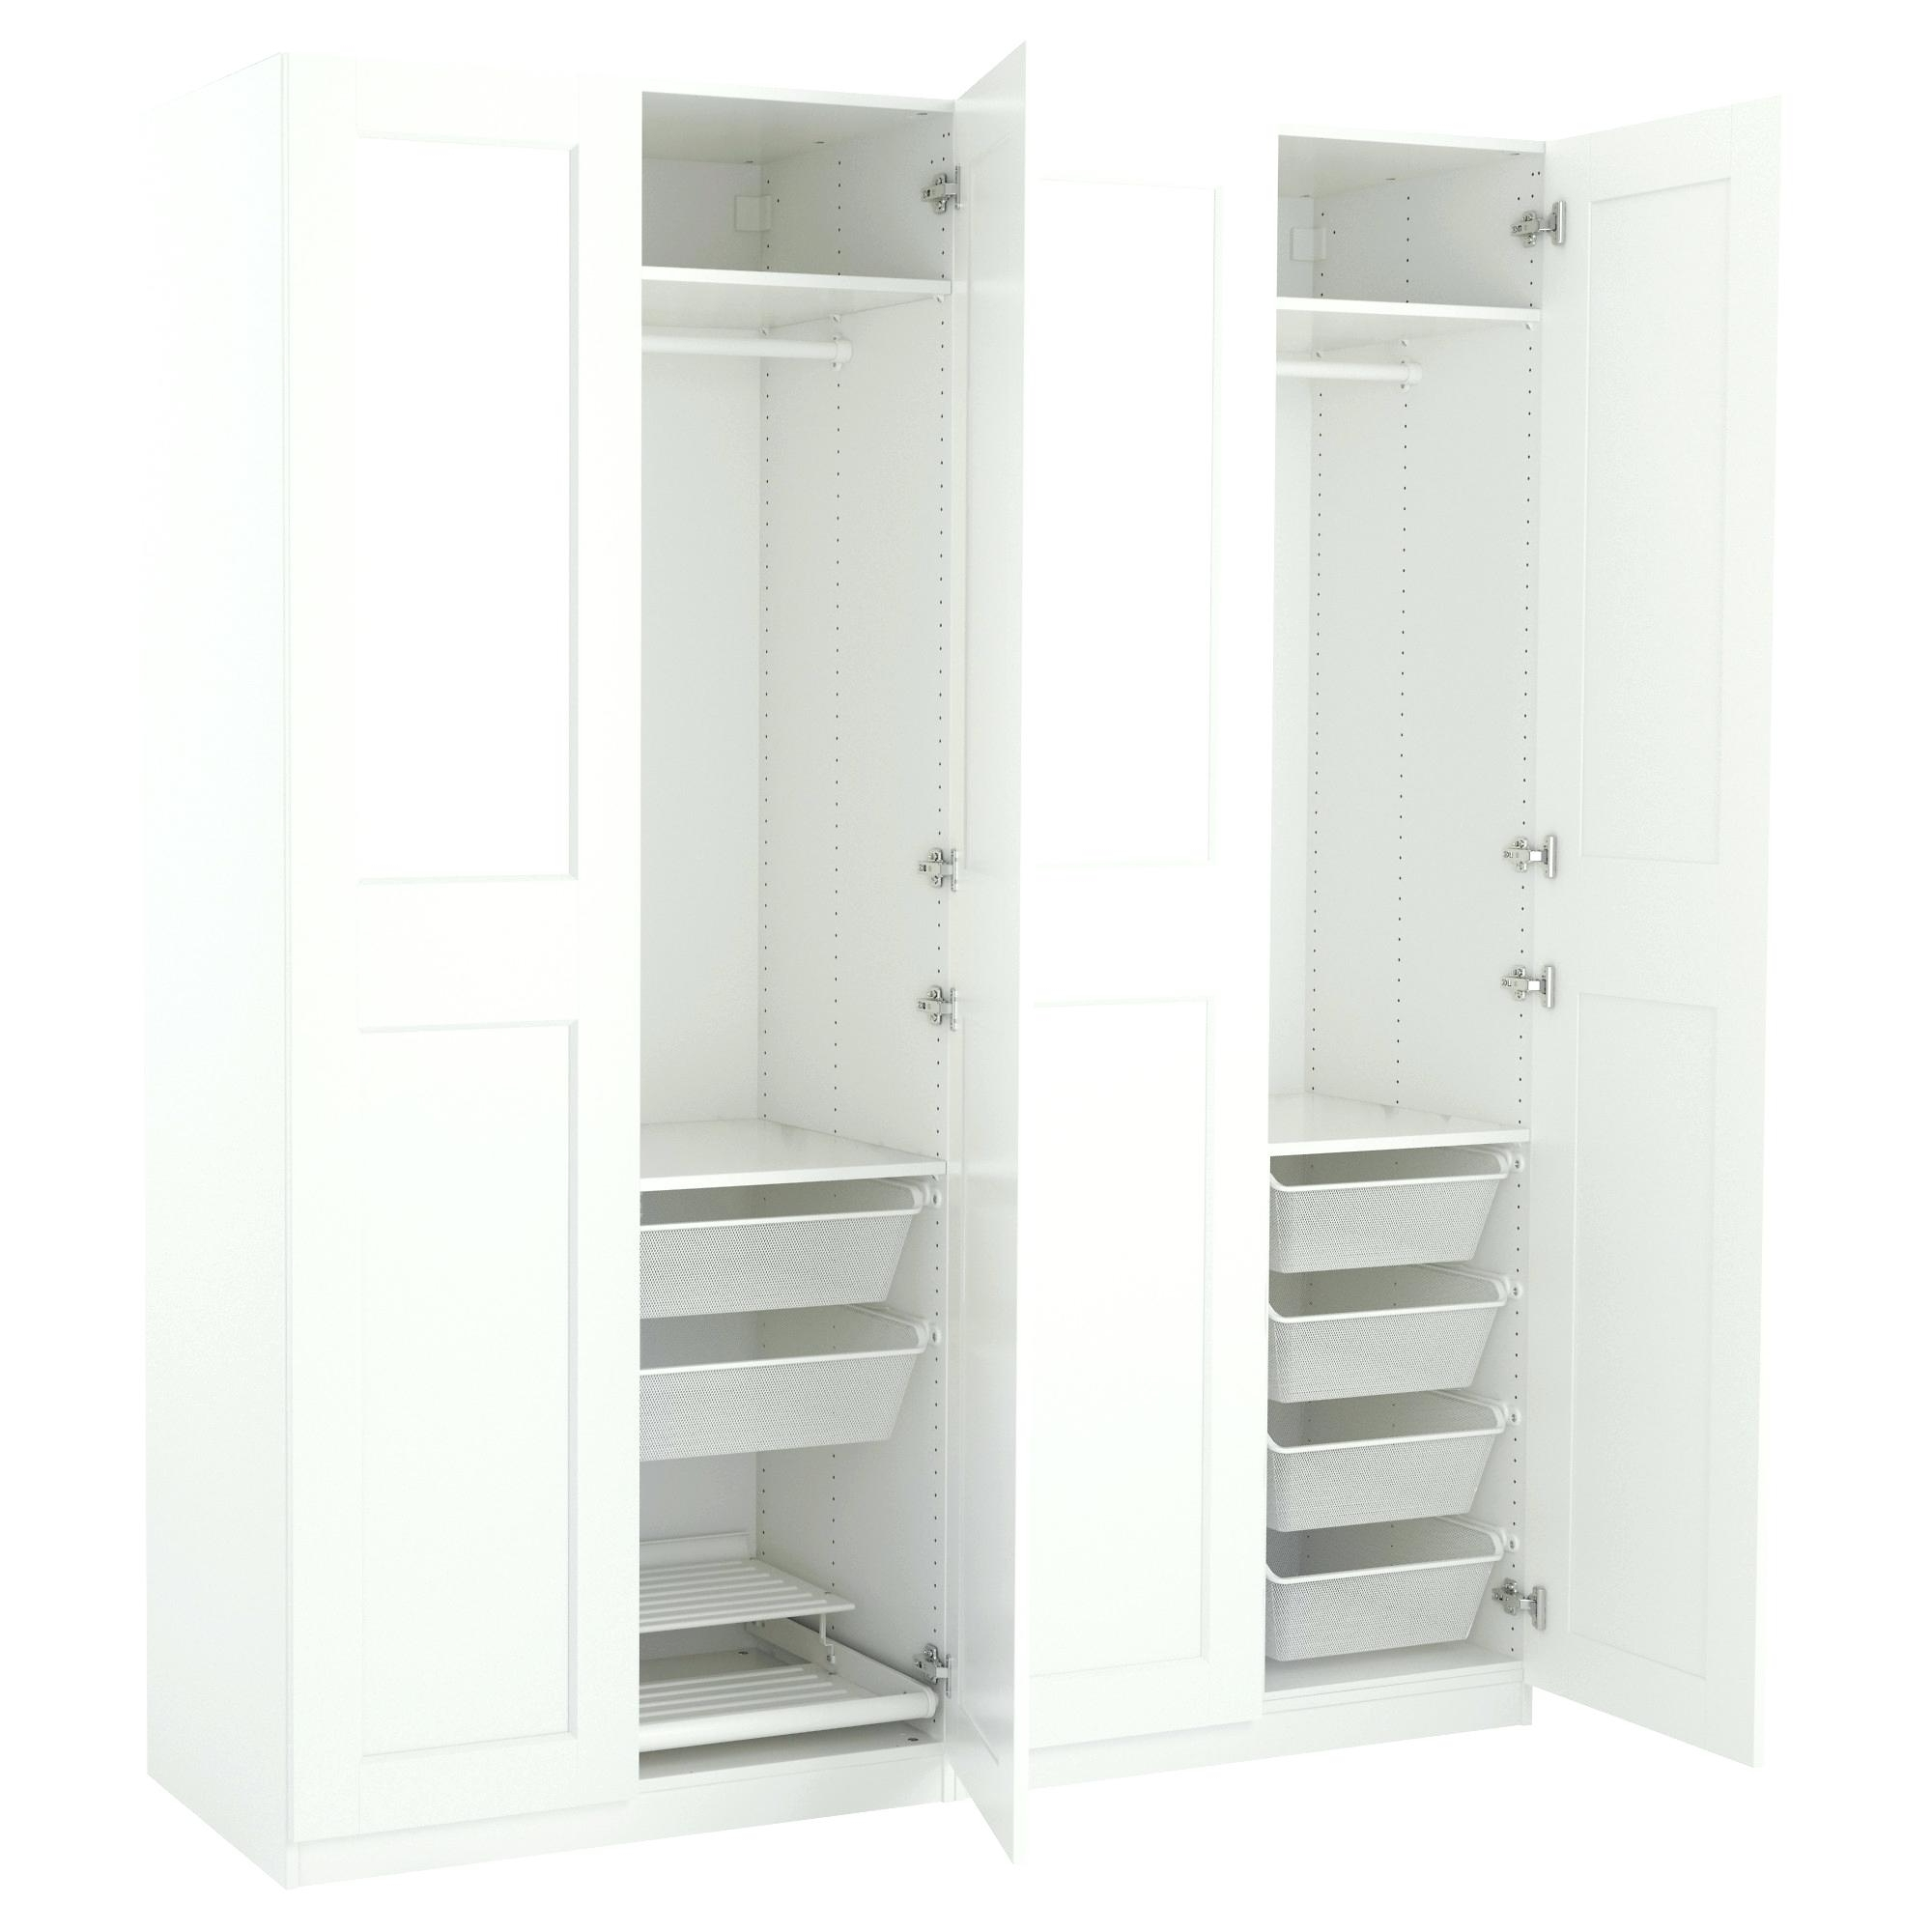 Famous Fitted Wardrobe Depth With Closet ~ 4 Door Wardrobe Closet Fitted Wardrobe With Shaker Mirror (View 11 of 15)